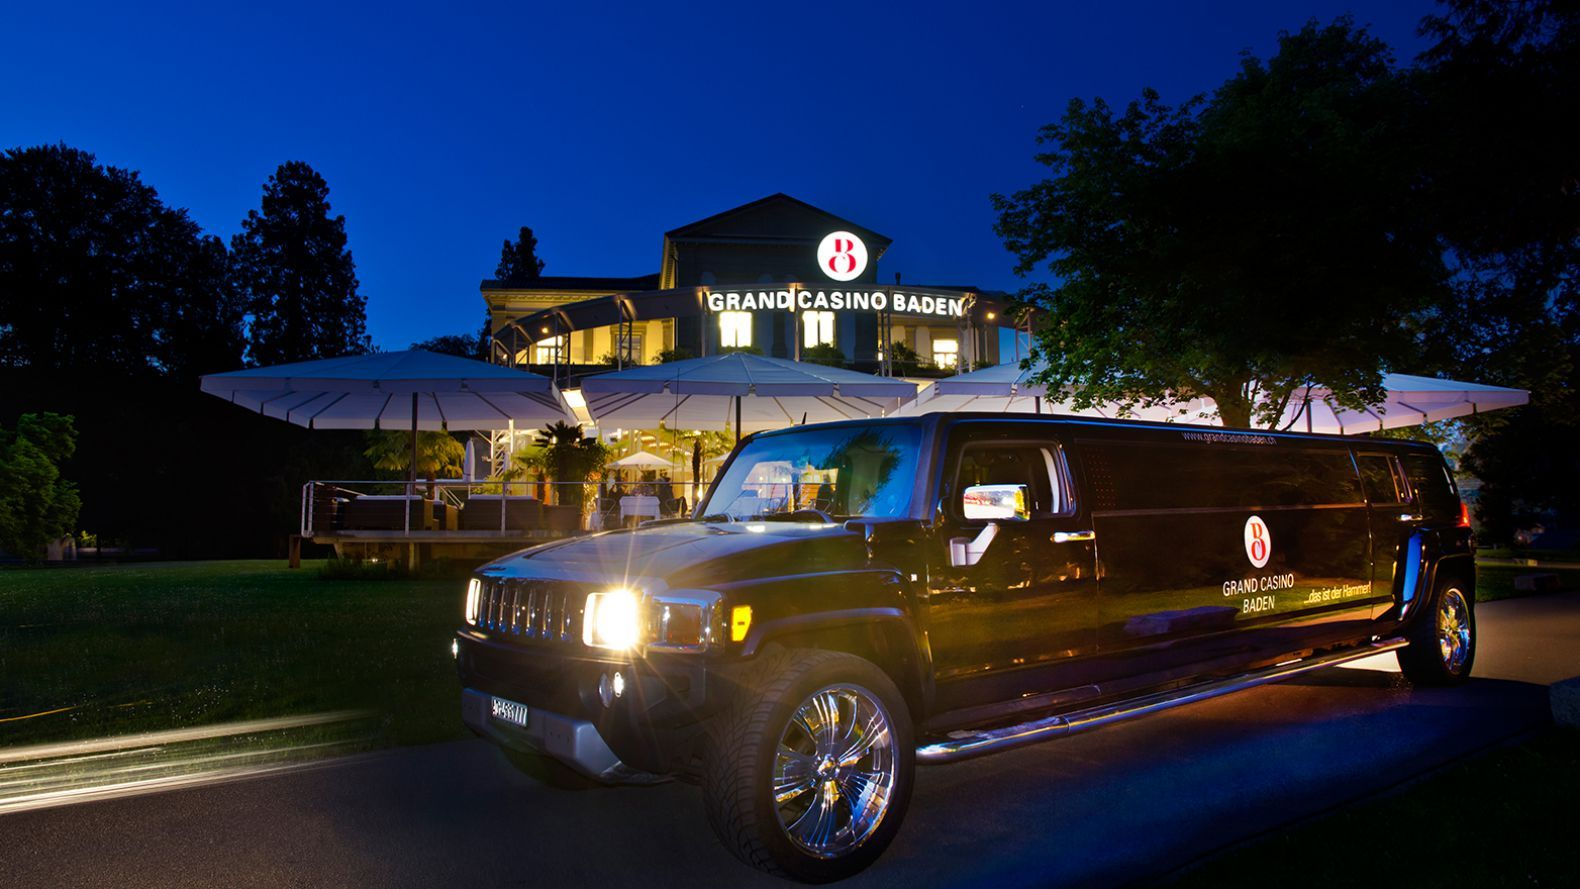 Stretch-Limousine vor Grand Casino Baden